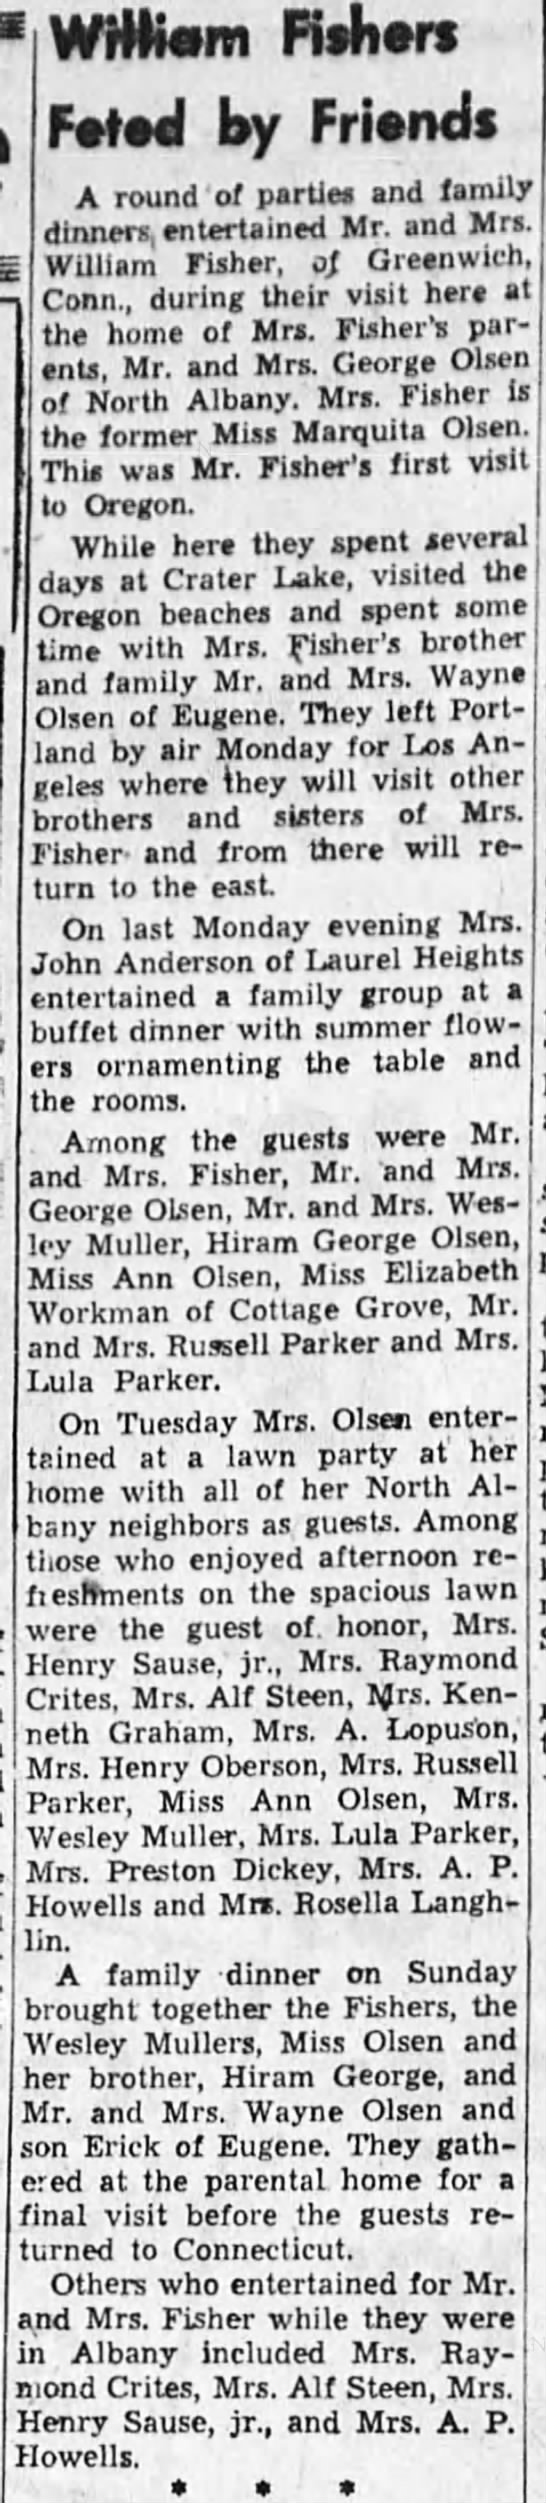 1953-8-27 Fishers visit from Connecticut - Wftriam Fishers Ftod by Fritnds A round of...